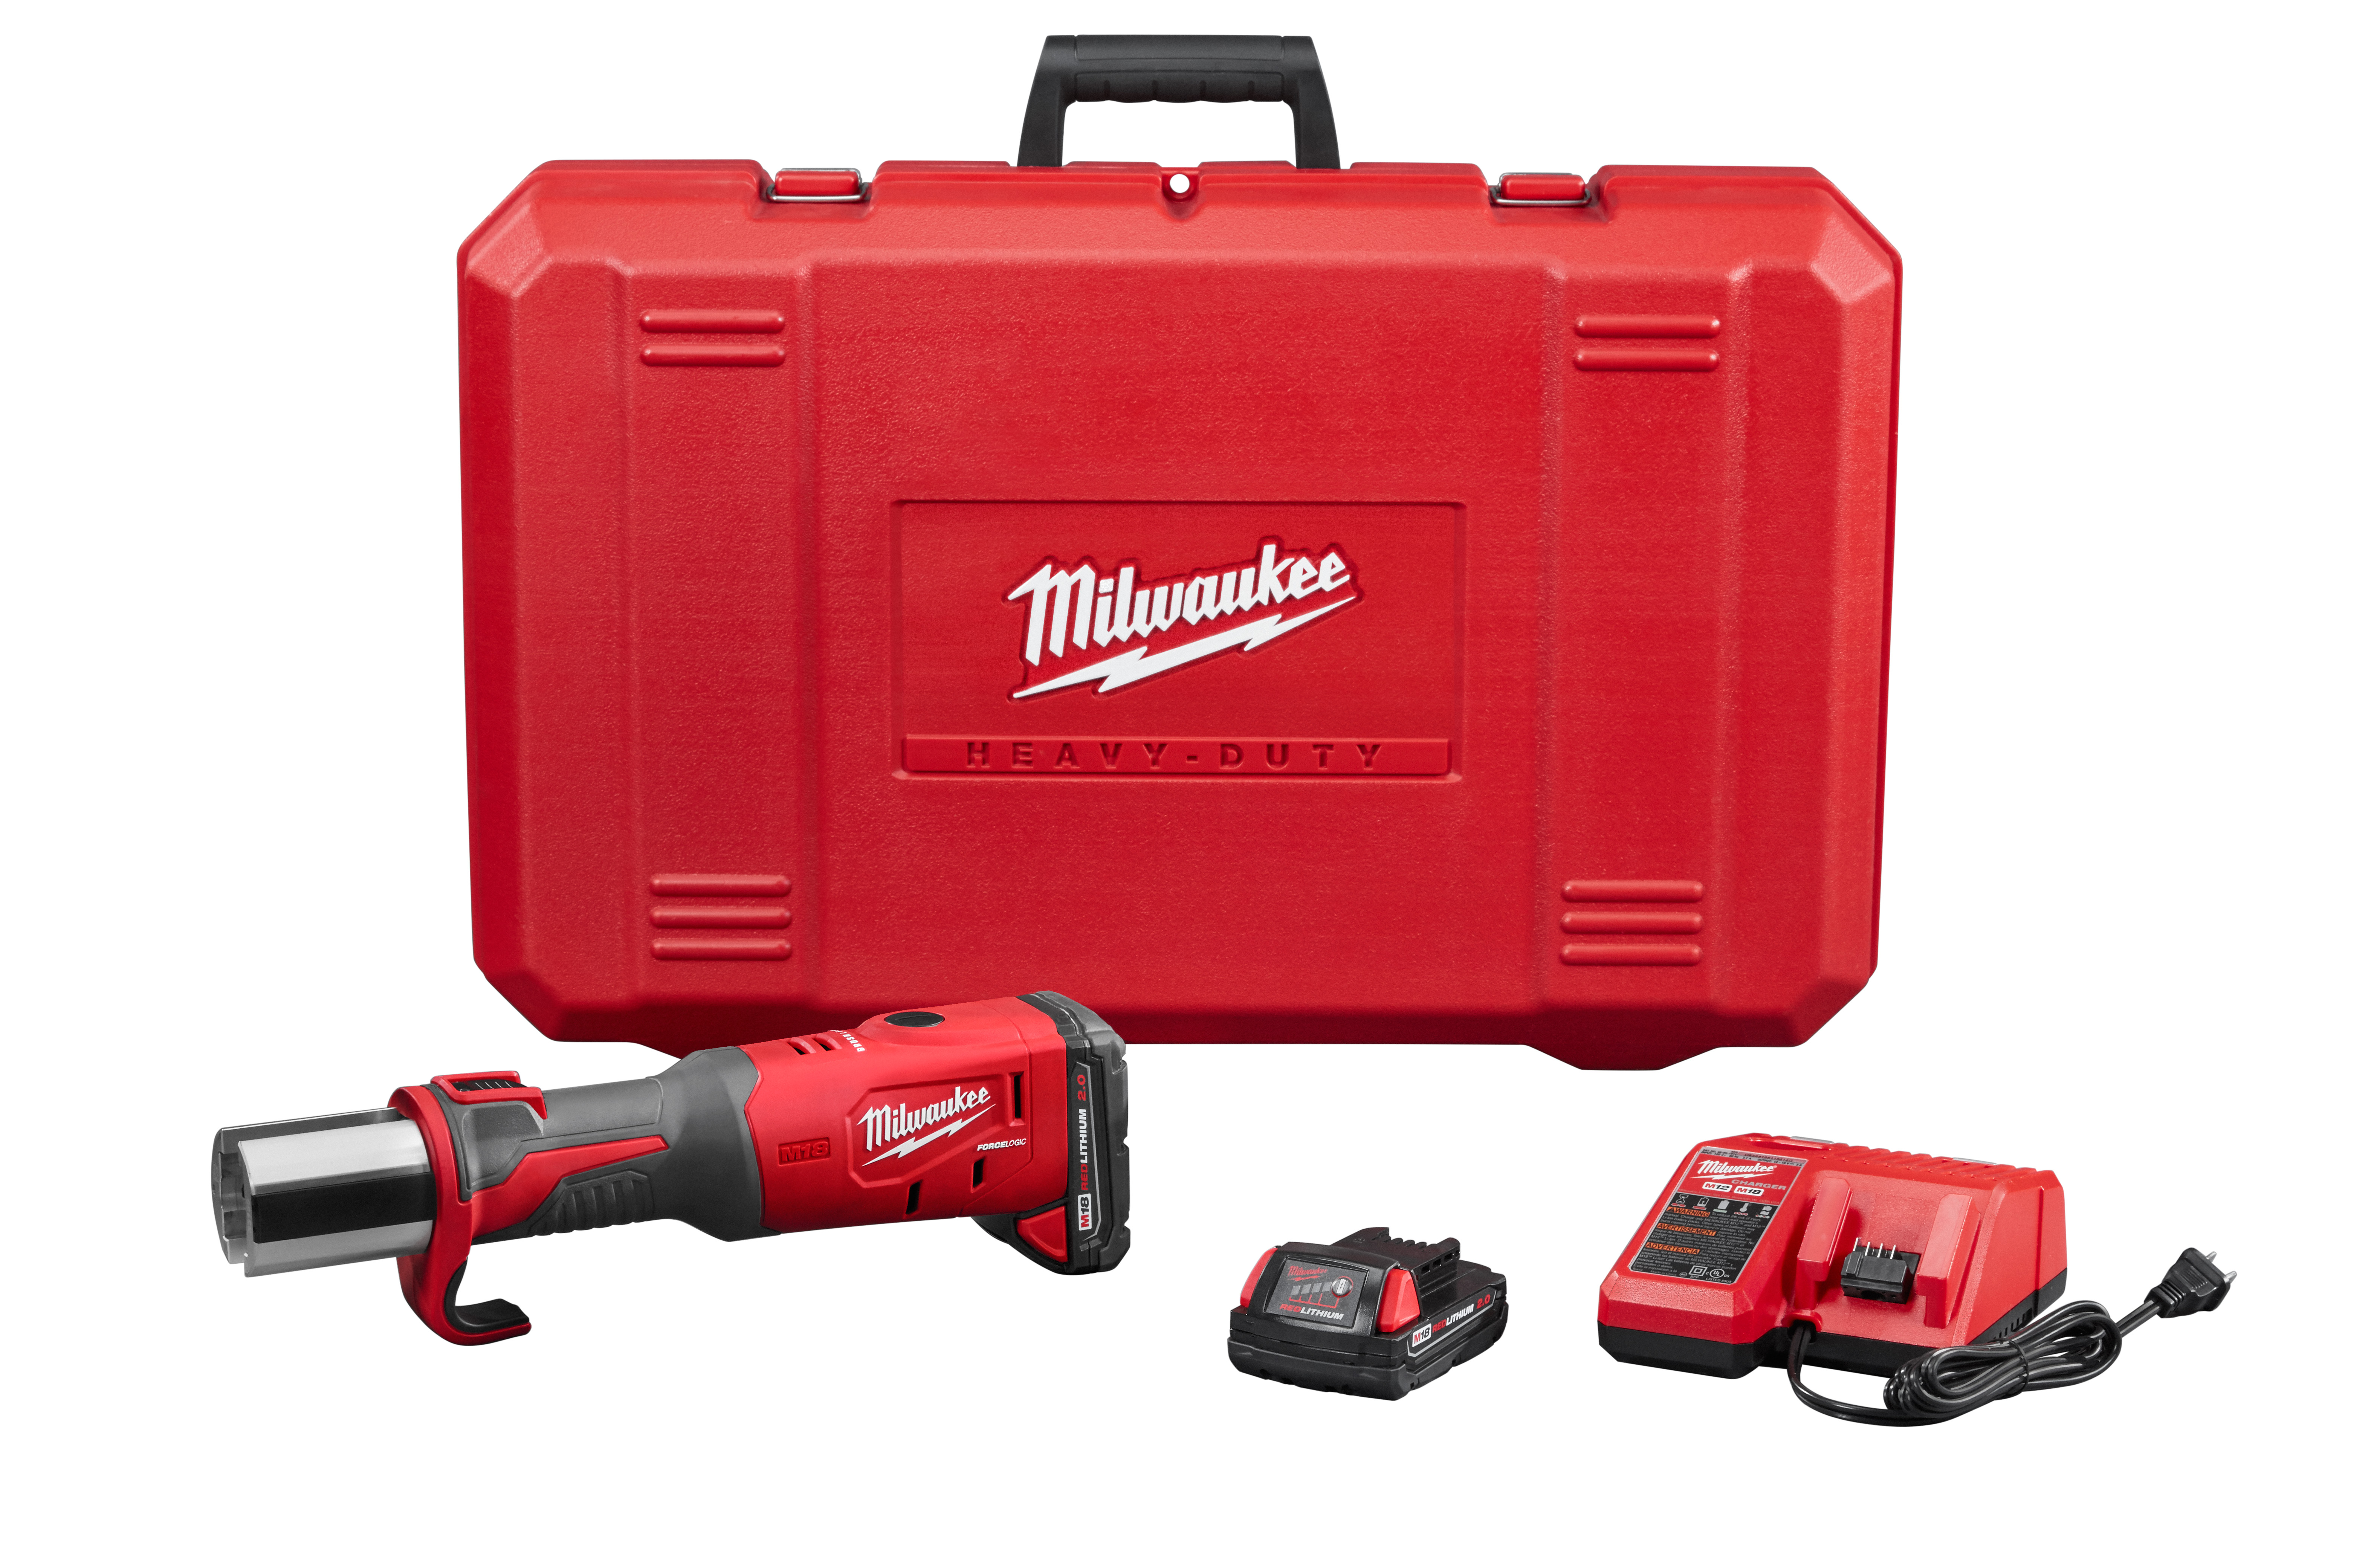 Milwaukee® M18™ 2773-20 Brushless Short Throw Cordless Press Tool, 1/2 to 4 in Capacity, 3.7 s Crimp, 18 VAC, Lithium-Ion Battery